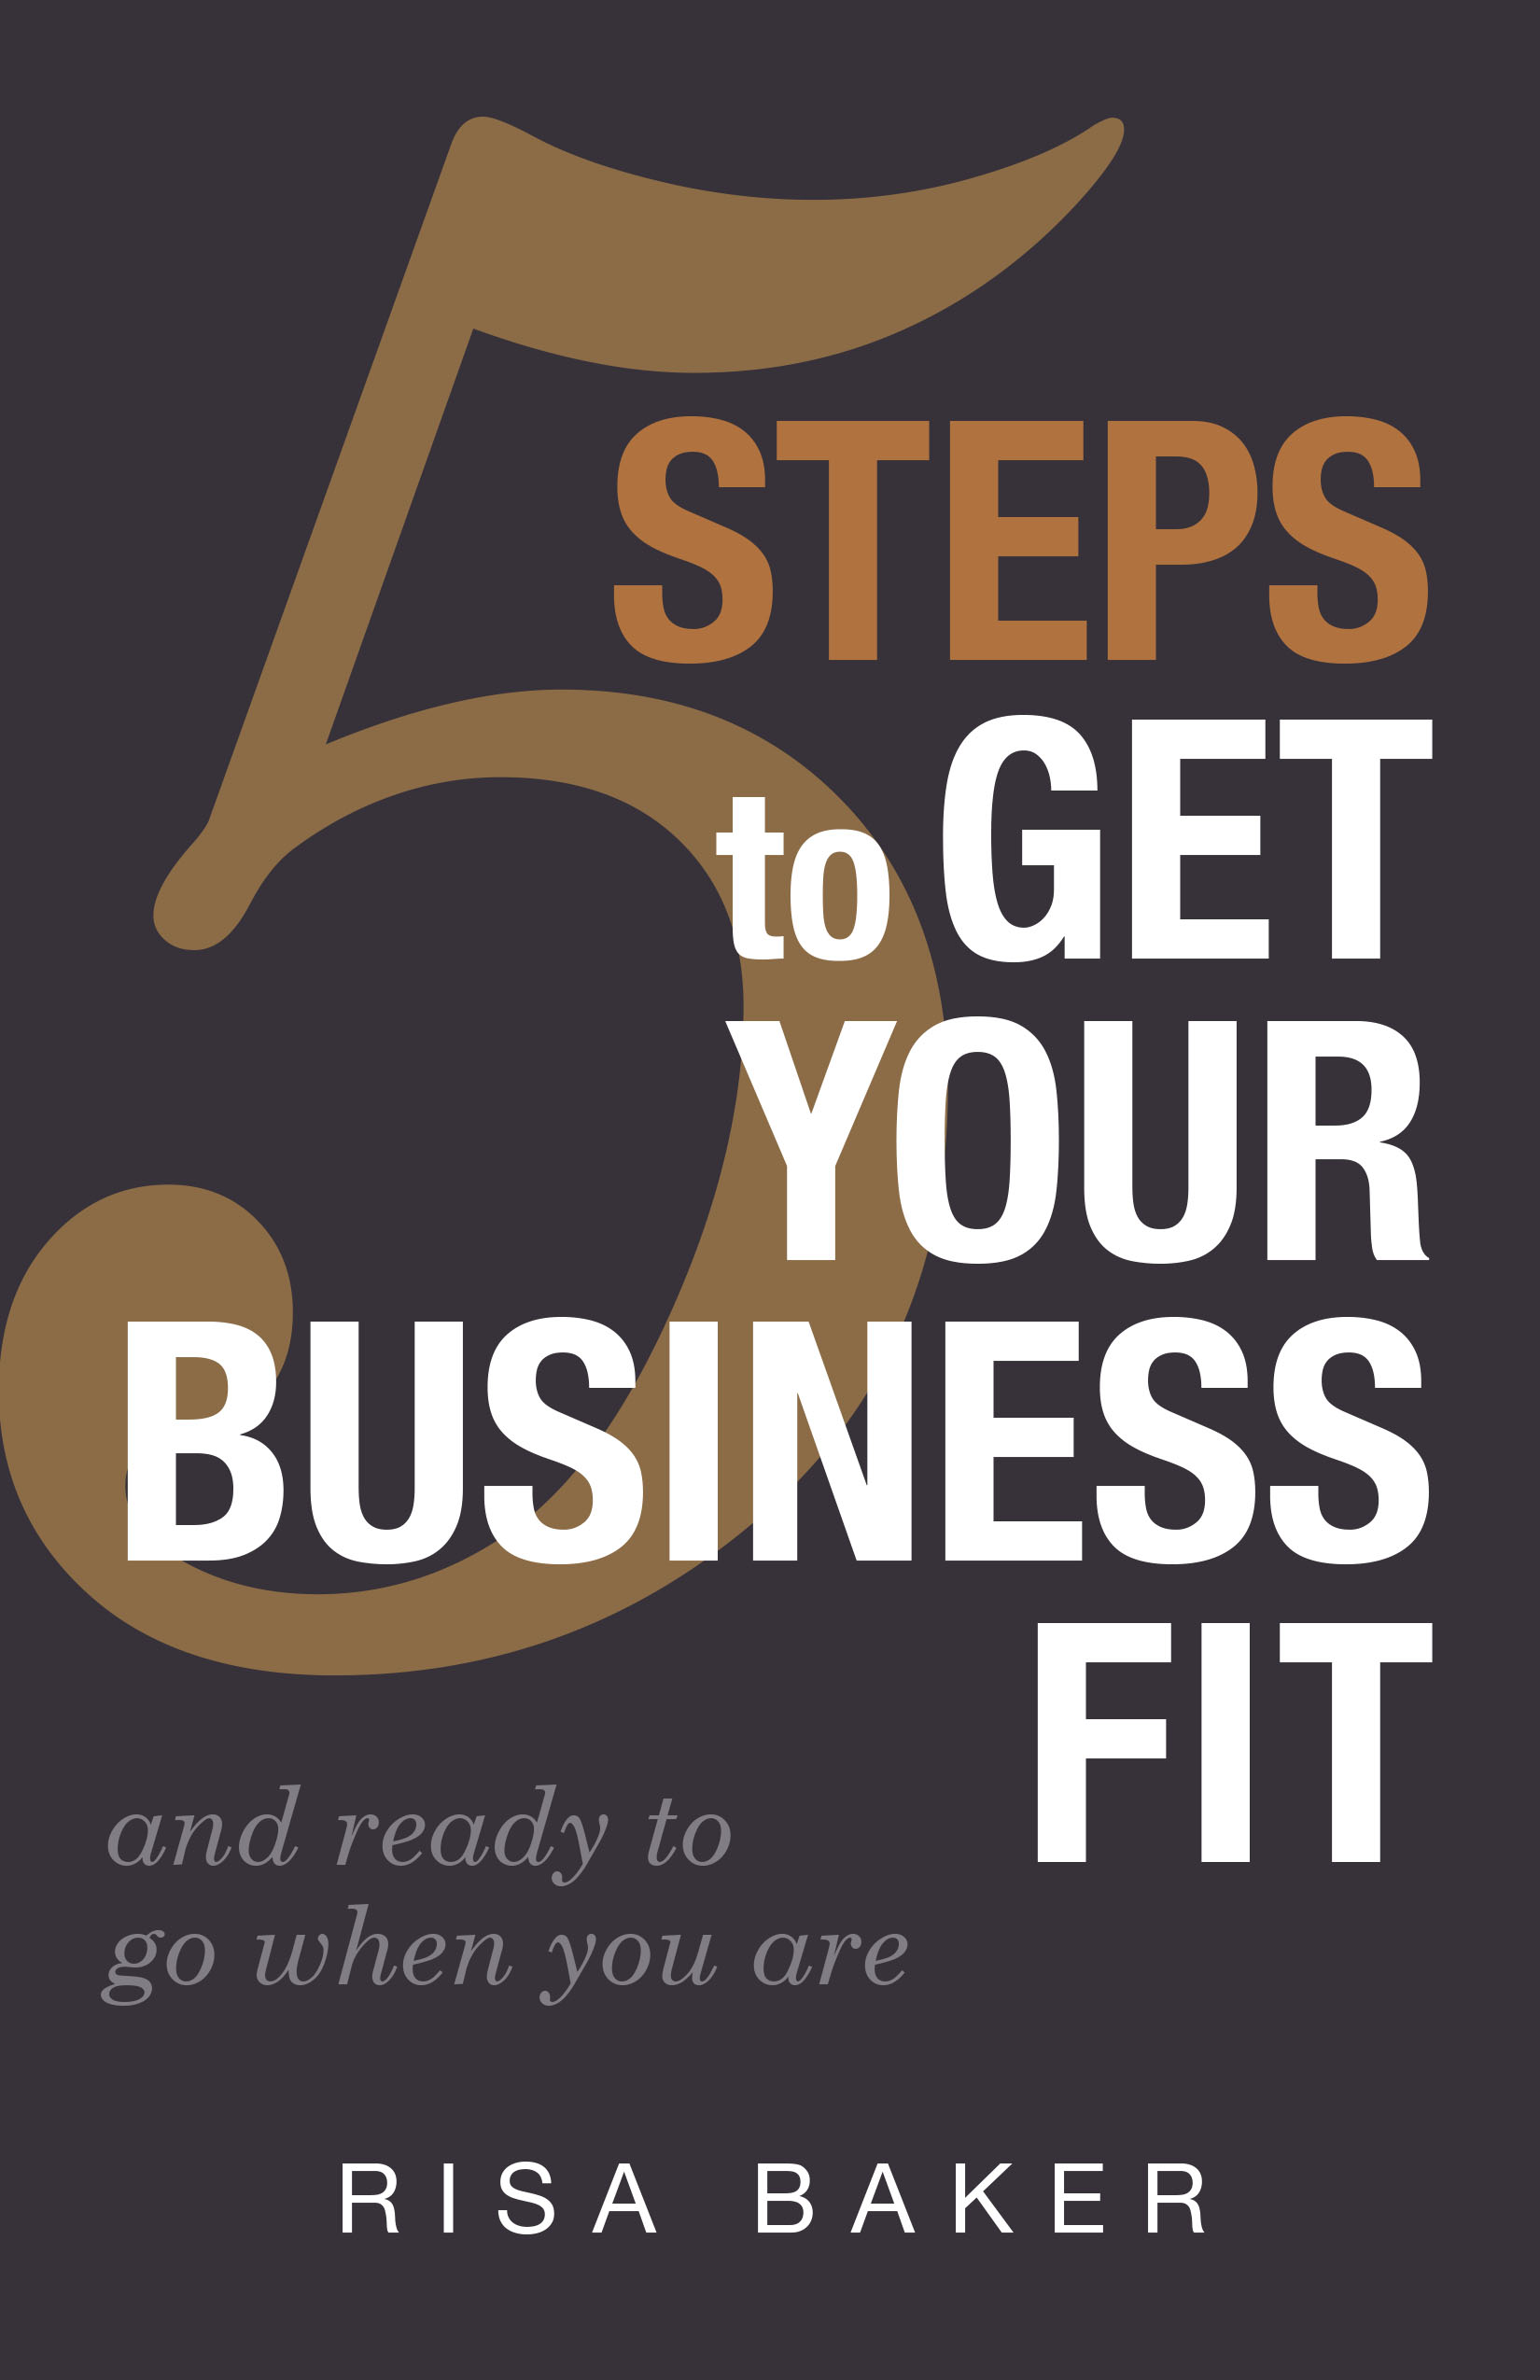 5 Steps to Get Your Business Fit